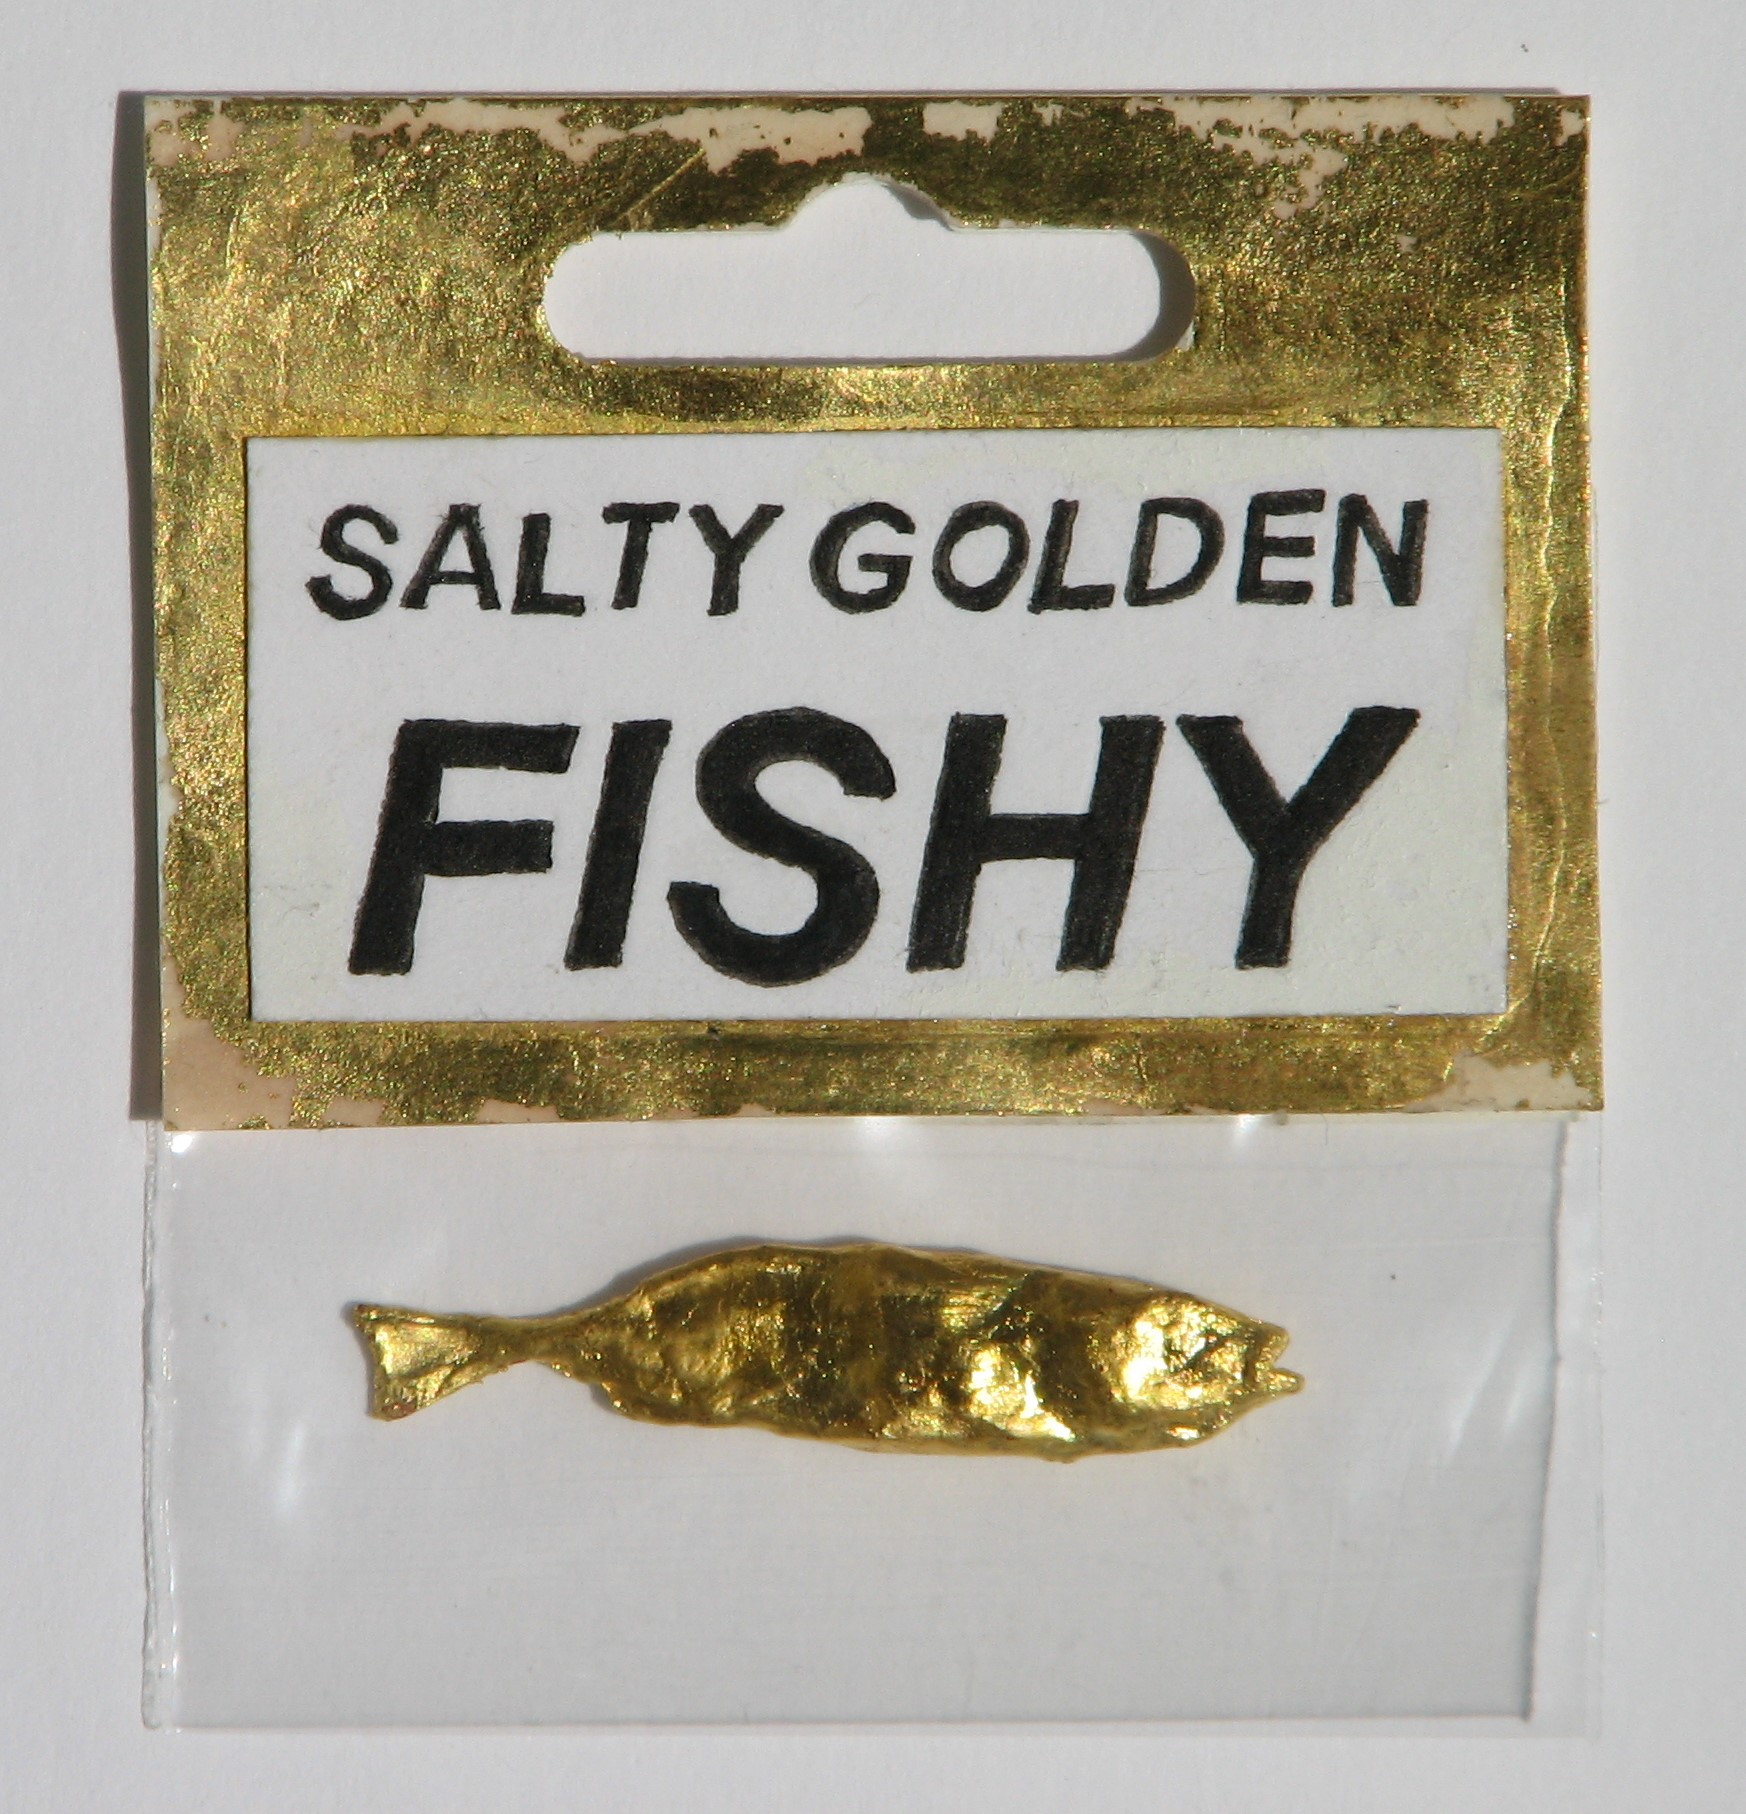 Salty Golden Fishy  2016  Gilt Fish in Packaging  4,6 x 1cm